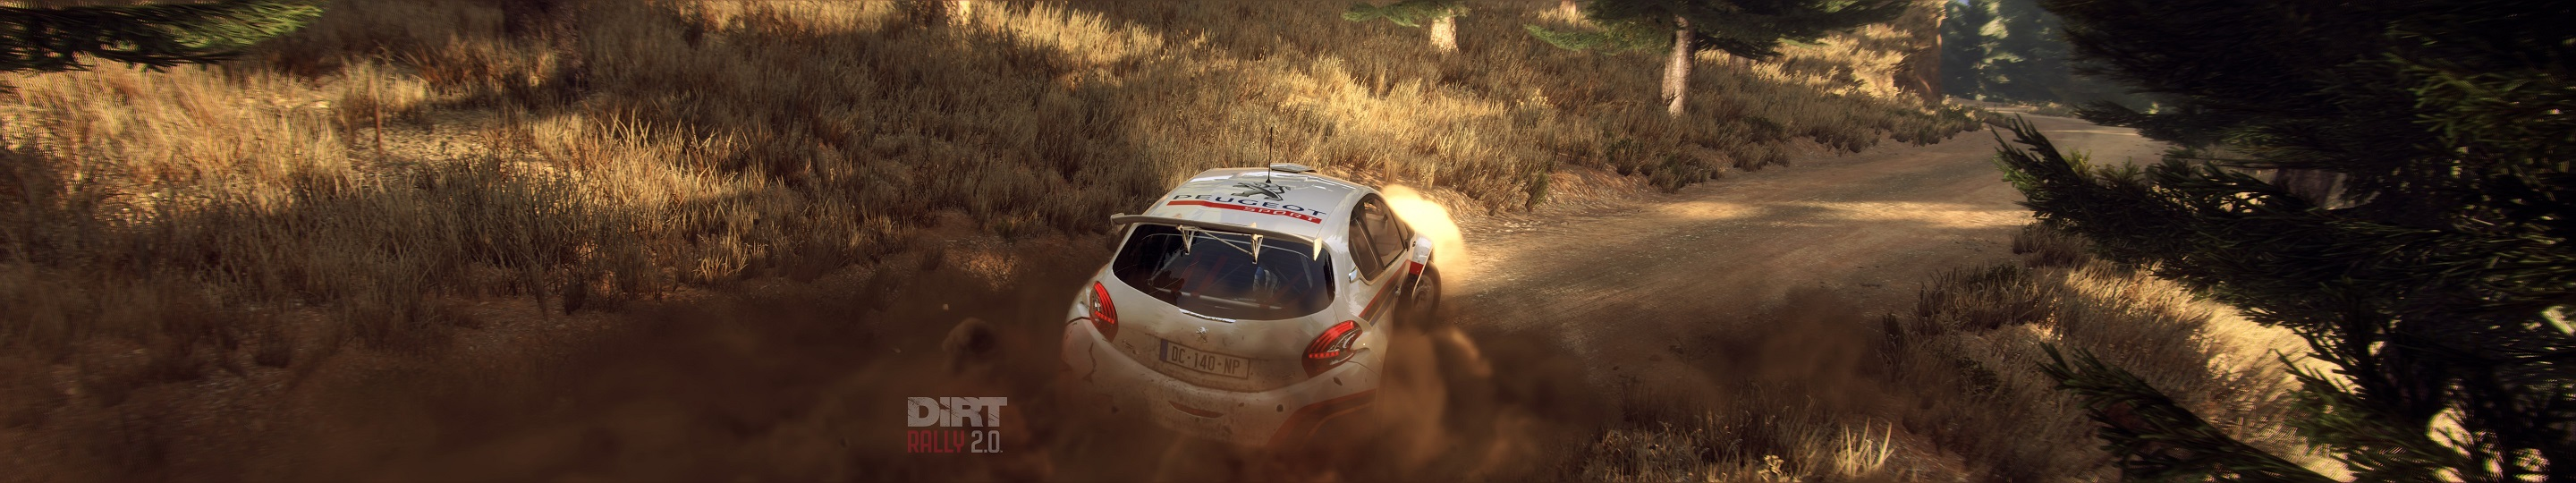 3 DIRT RALLY 2 GREECE with R5 PEUGEOT copy.jpg